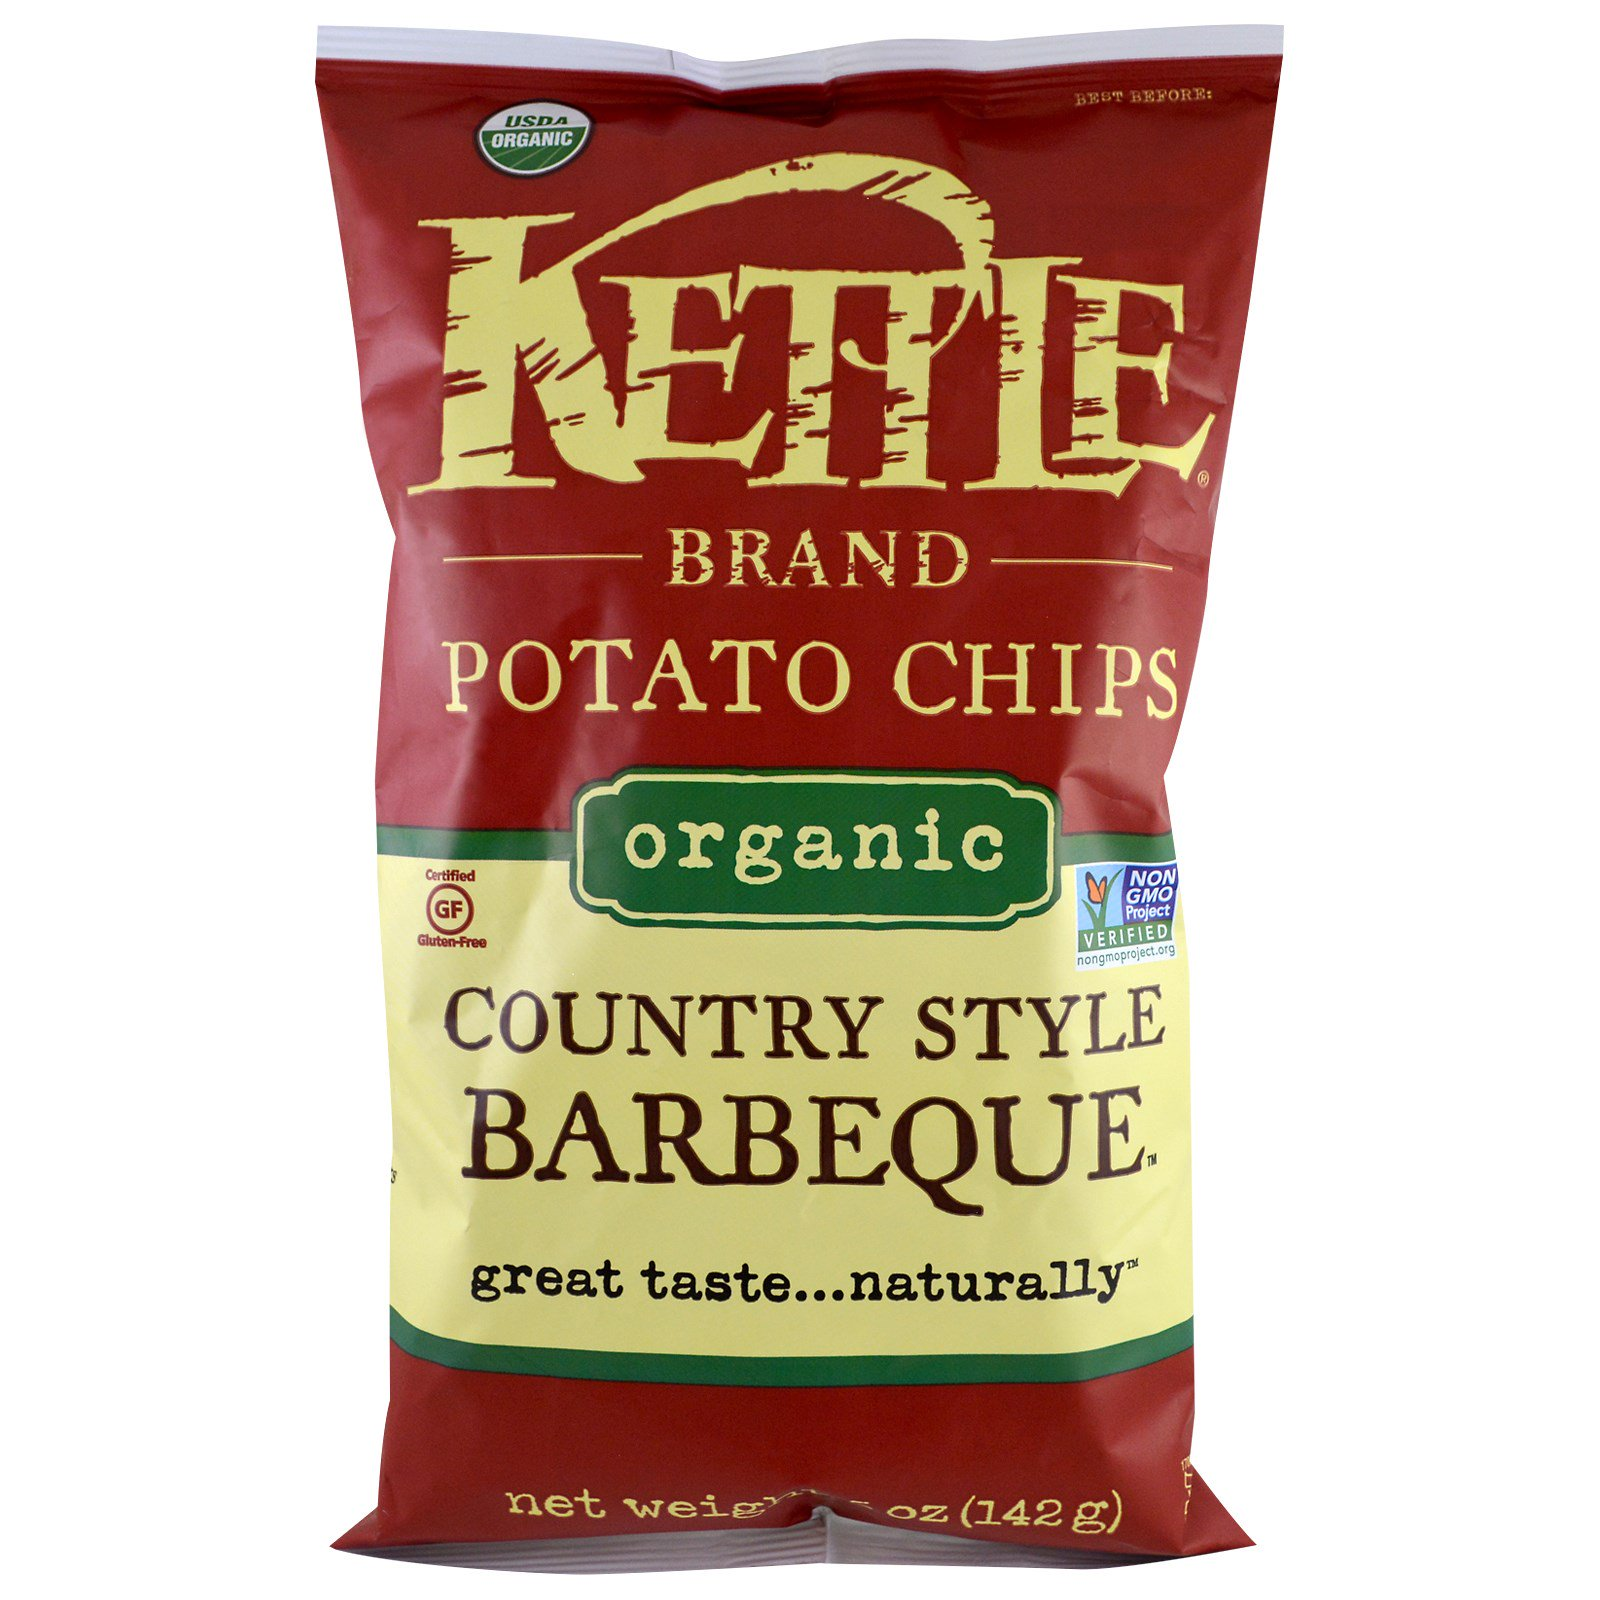 Kettle Foods, Organic Potato Chips, Country Style Barbeque, 5 oz (pack of 6)